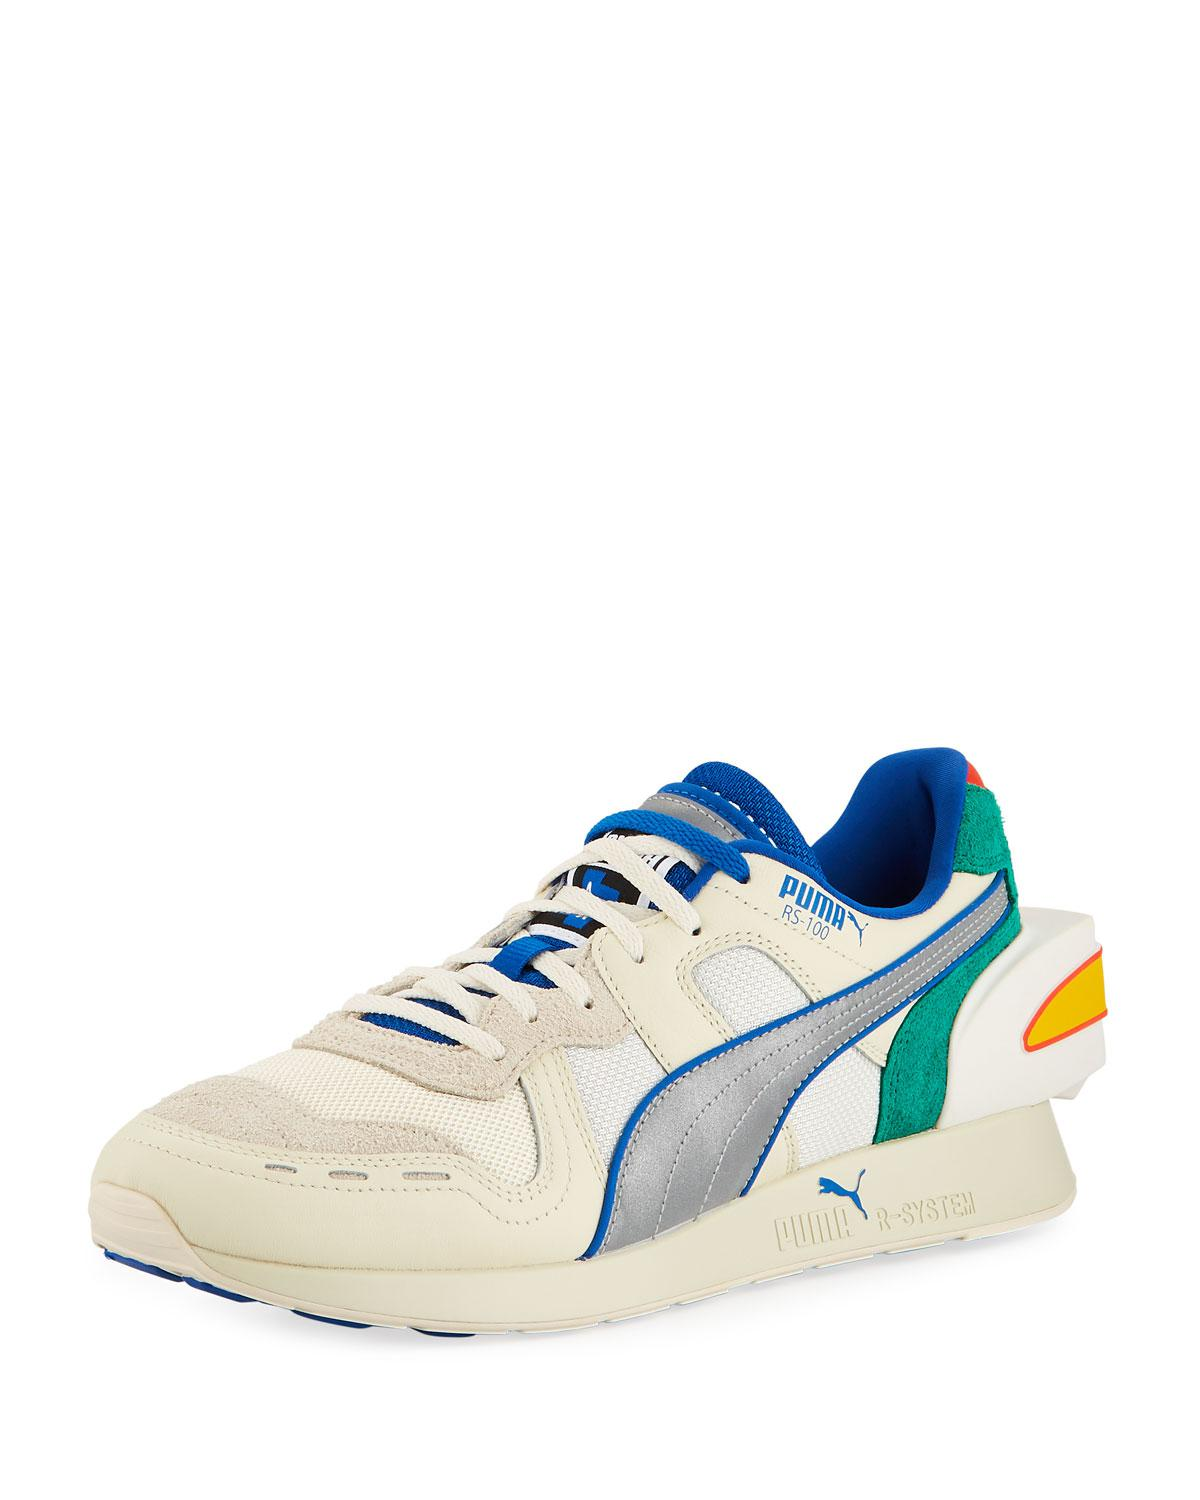 aa5d2e1f3a7614 ... Ader Error Colorblock Leather Trainer Sneakers for Men - Lyst. View  fullscreen